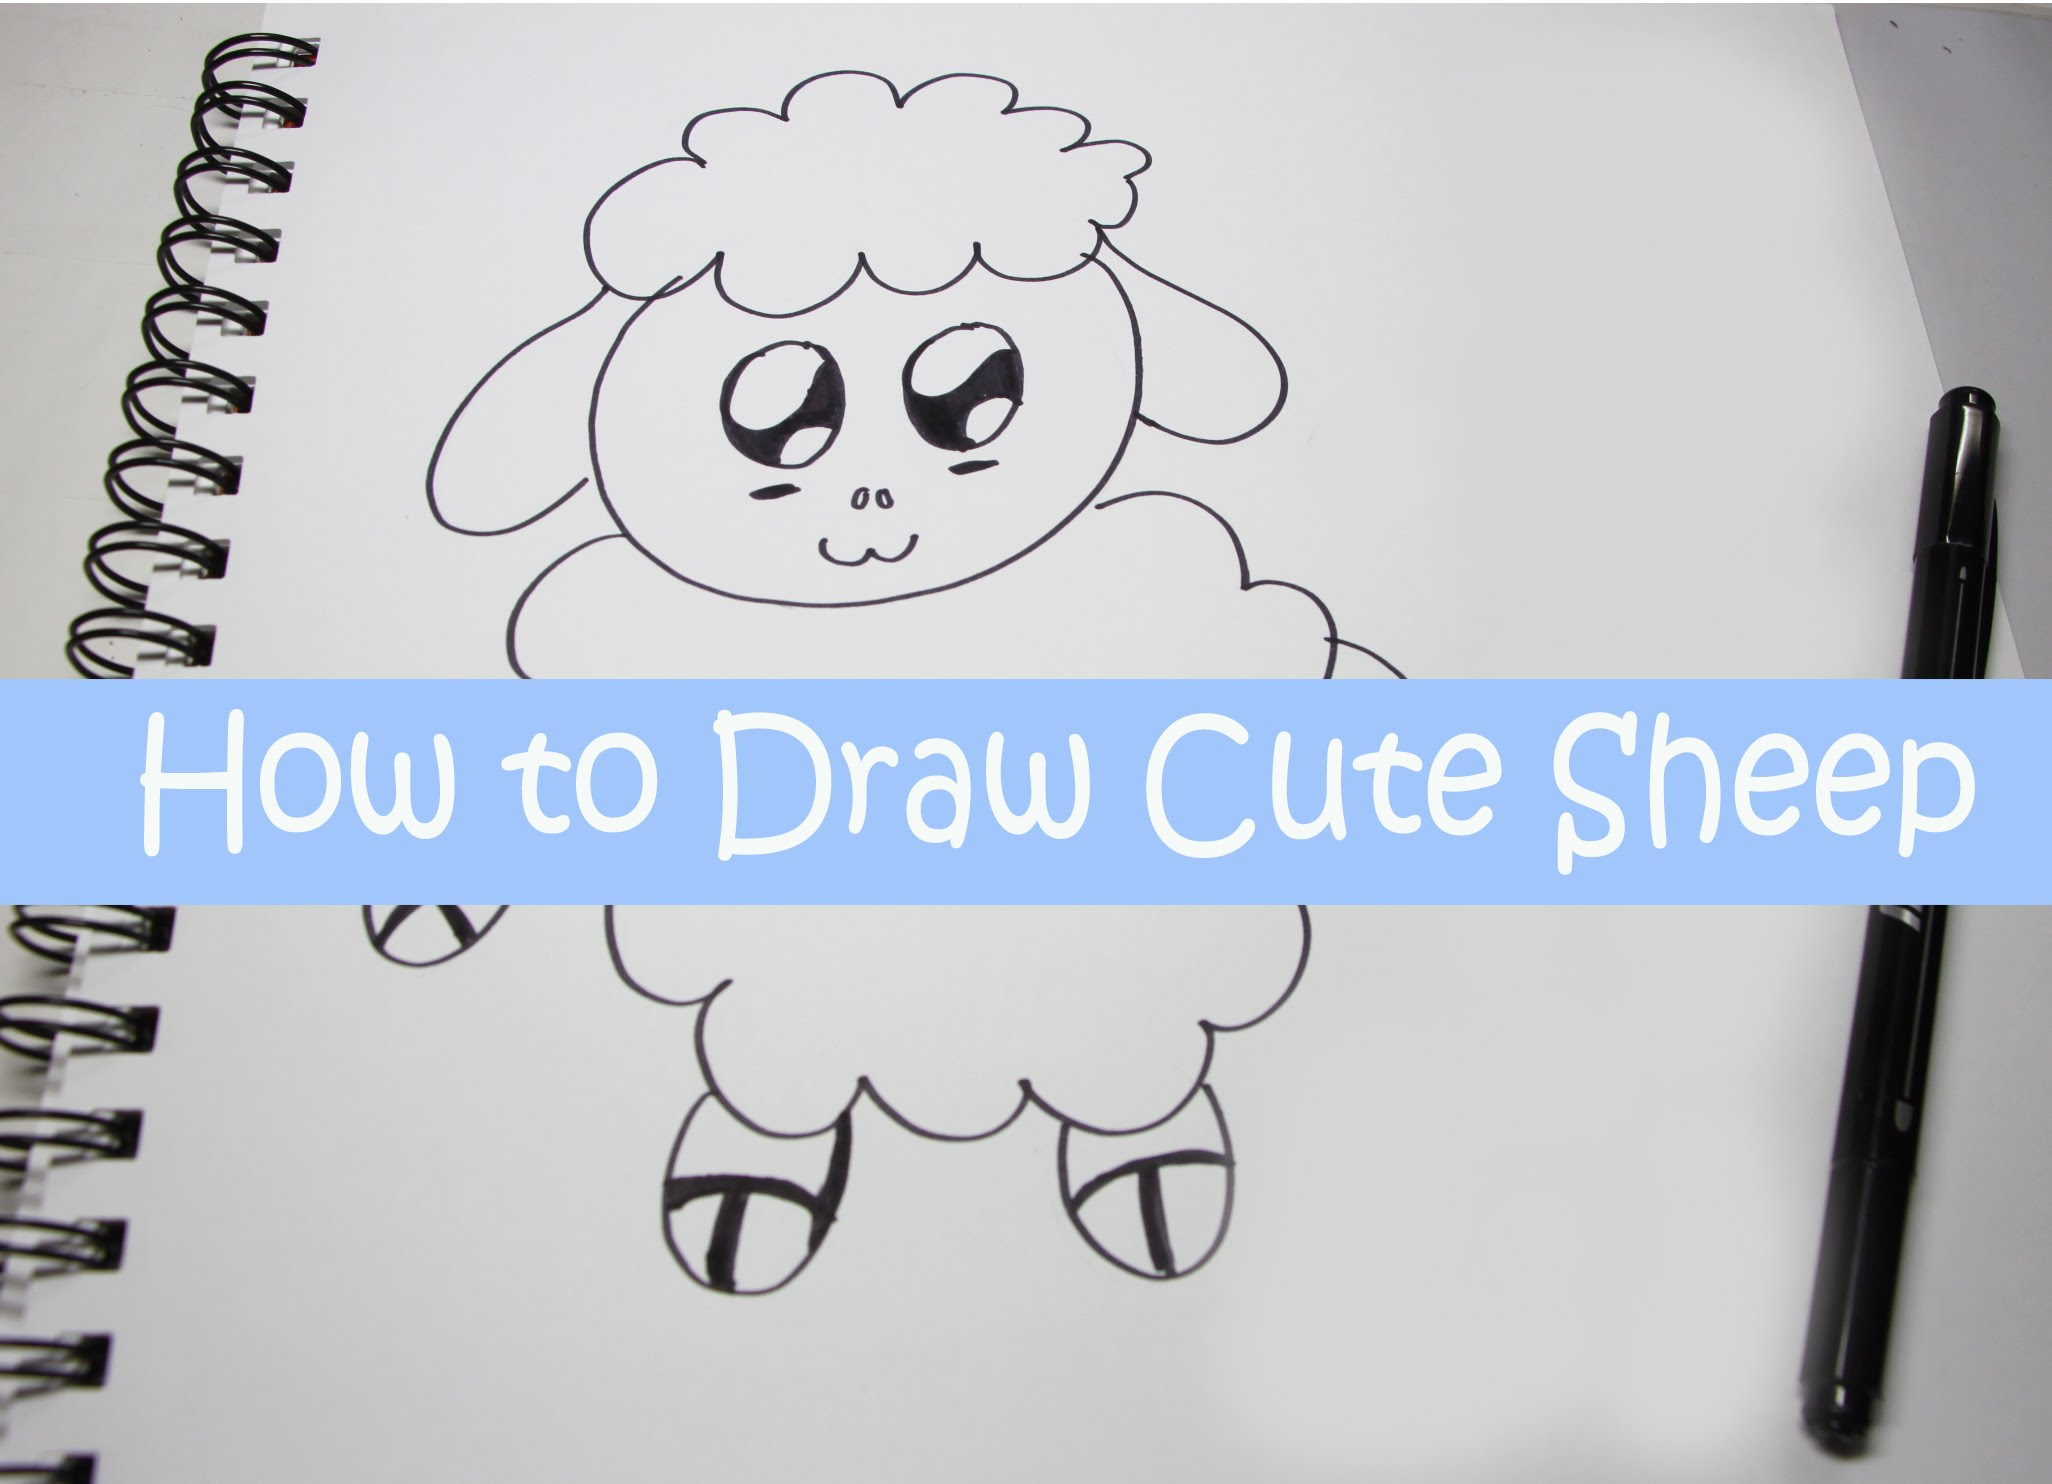 Line Drawing Of Sheep Face : Cute sheep drawing at getdrawings free for personal use